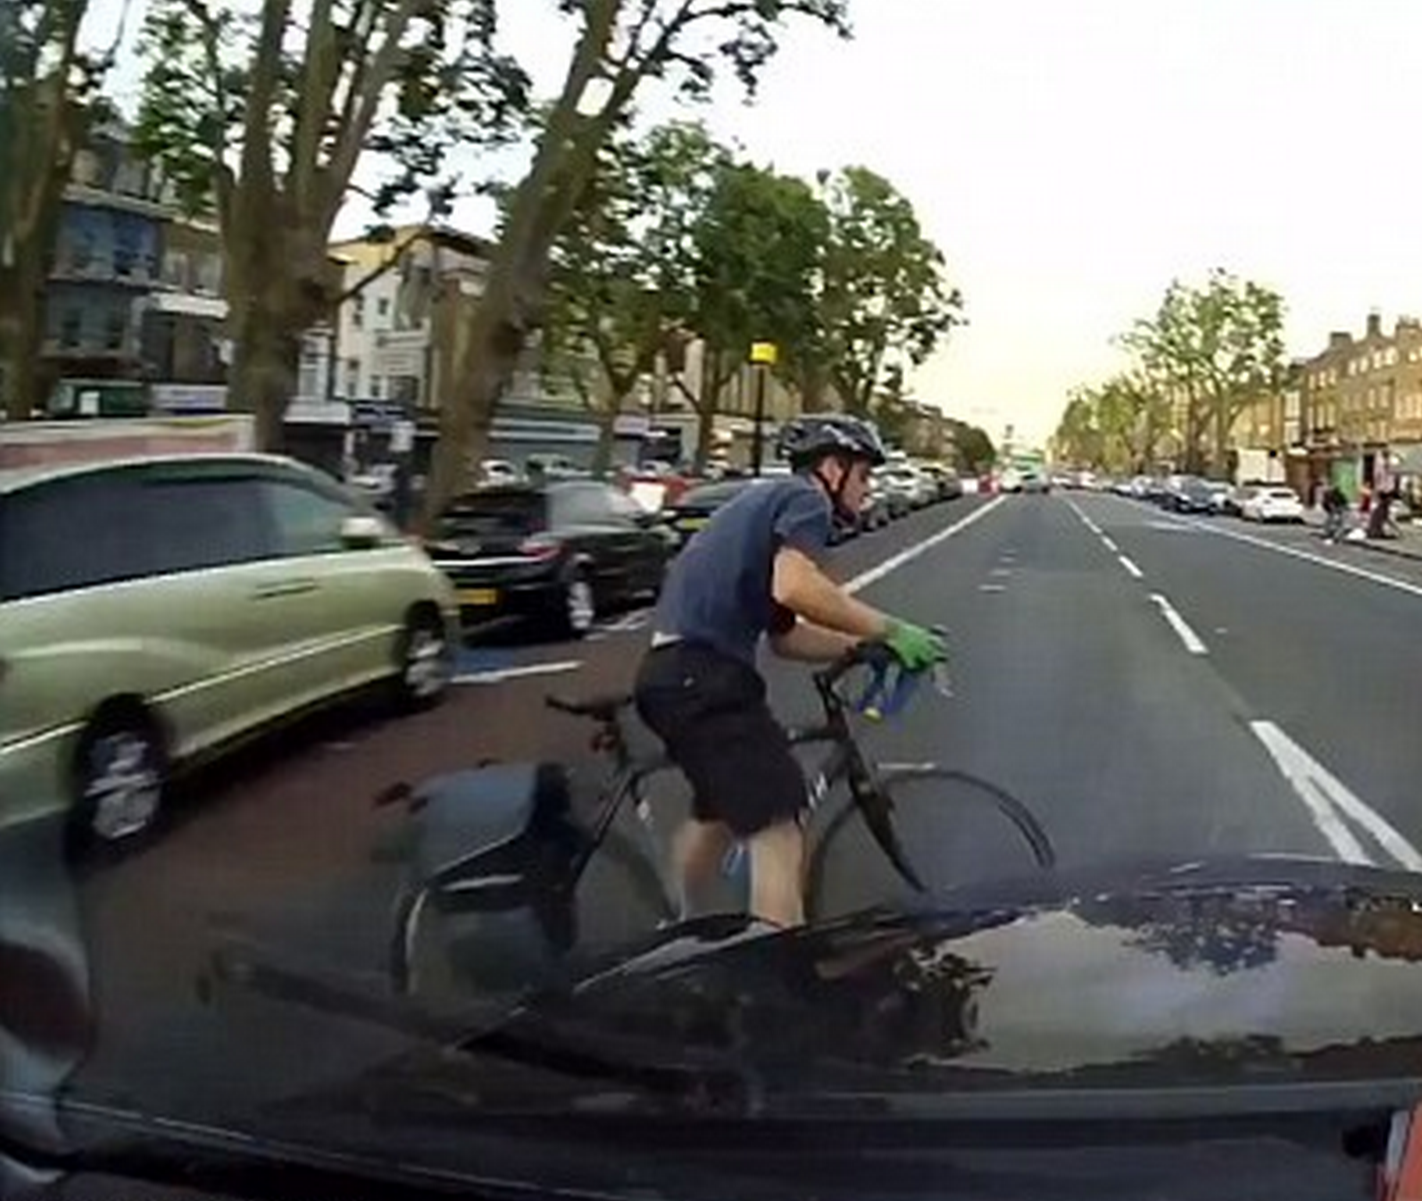 Shocking Moment Cyclist Swerves Car Door And Gets Hit By Taxi TsgkqGJ7R